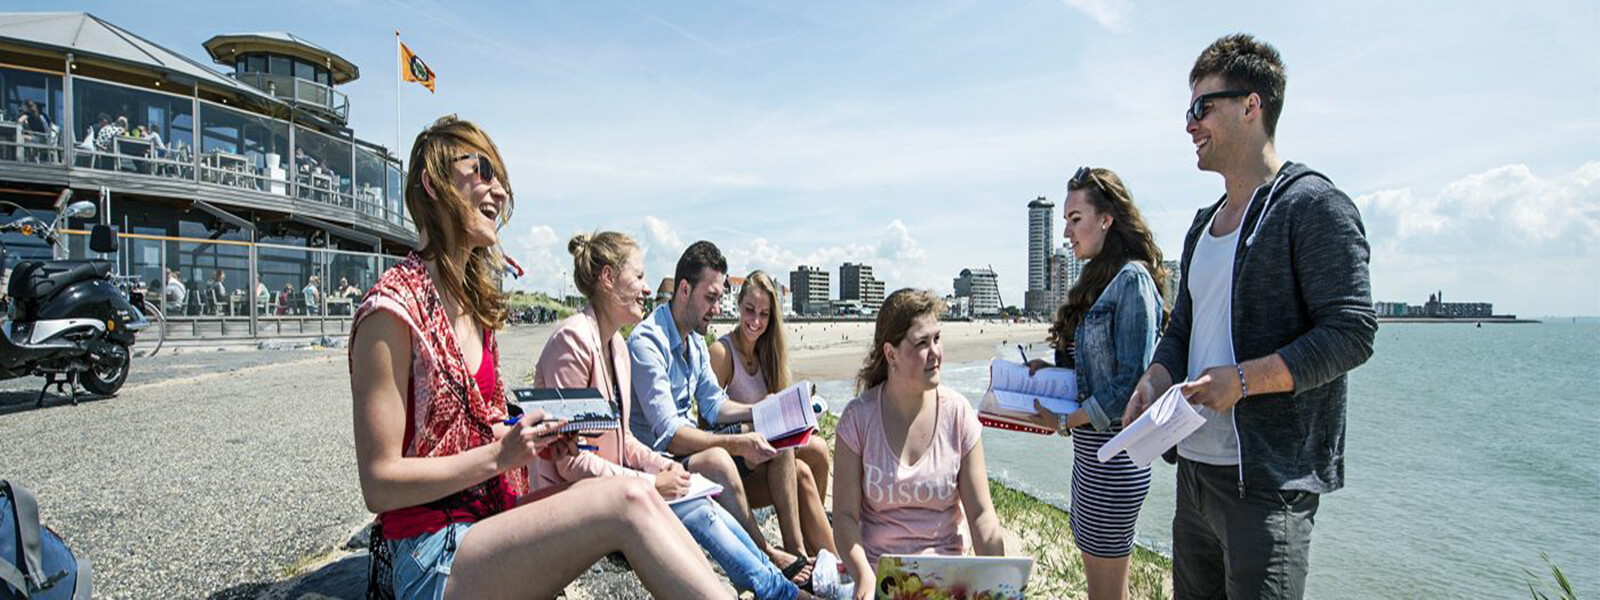 bachelor-international-tourism-management-studyinholland-universitiesofappliedsciences-hz-zeeland-vlissingen-holland